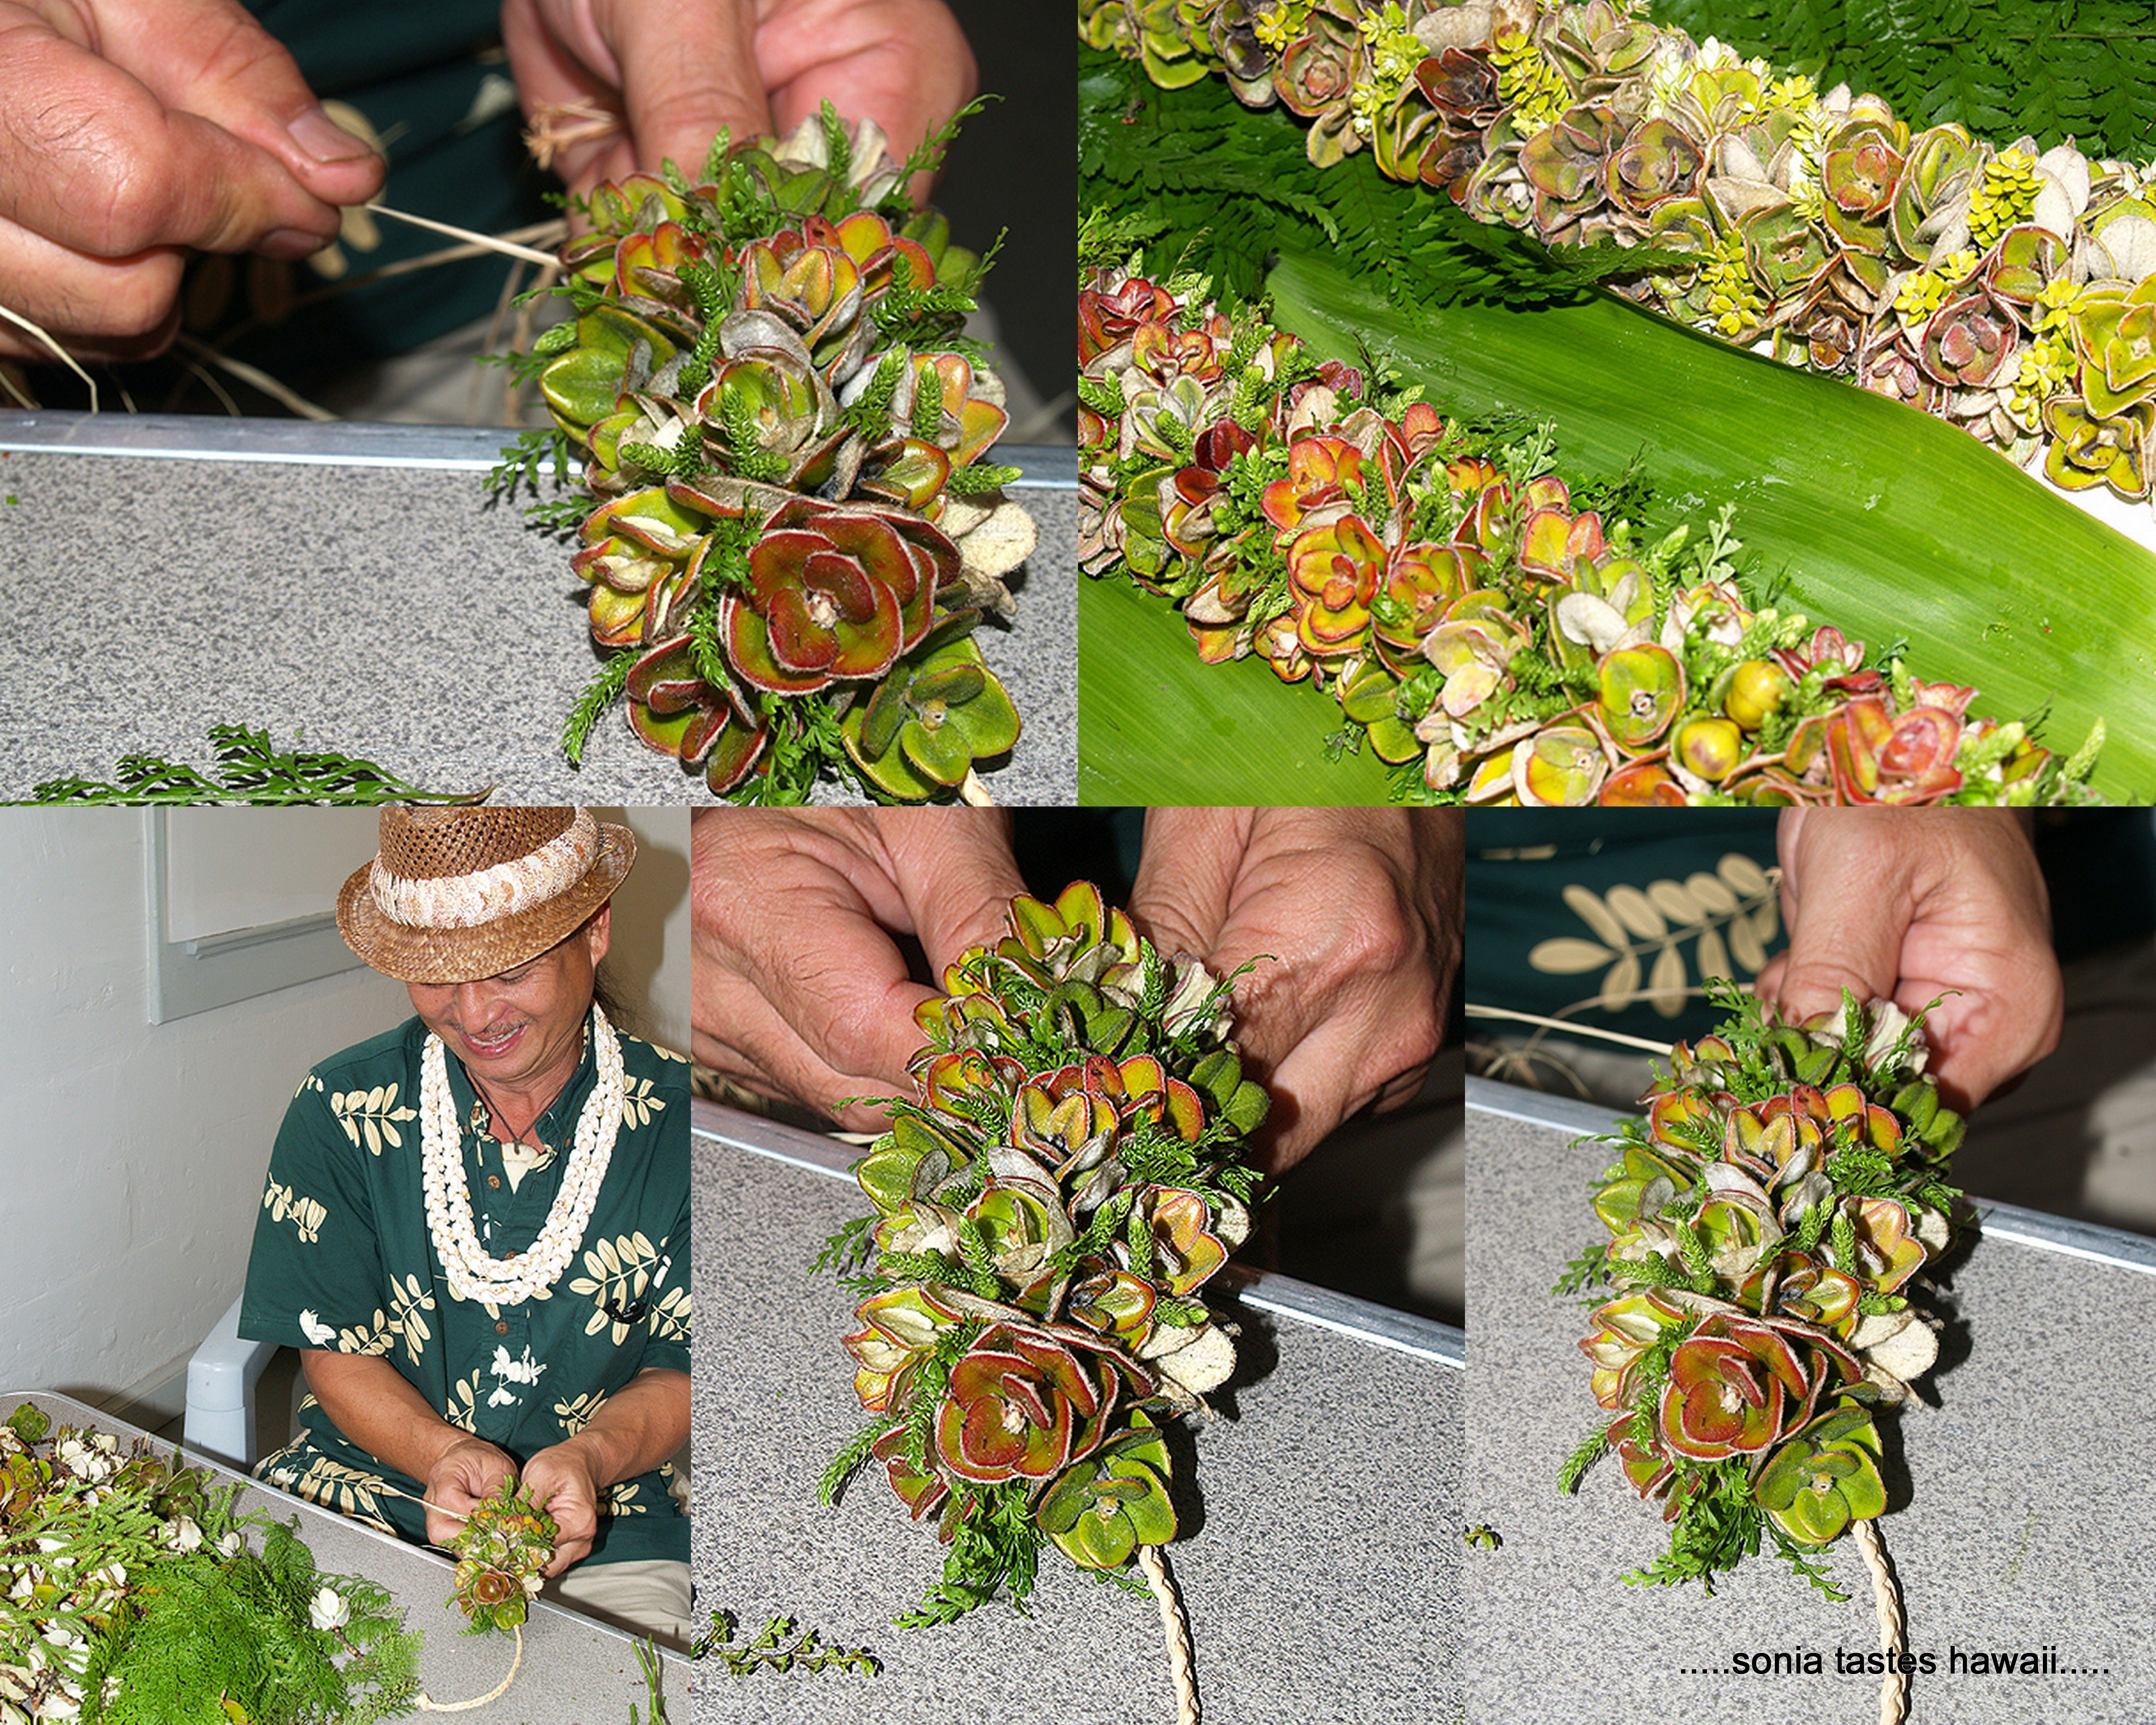 A beautiful lei made with liko lehua made by randy lee na pua a beautiful lei made with liko lehua made by randy lee izmirmasajfo Images